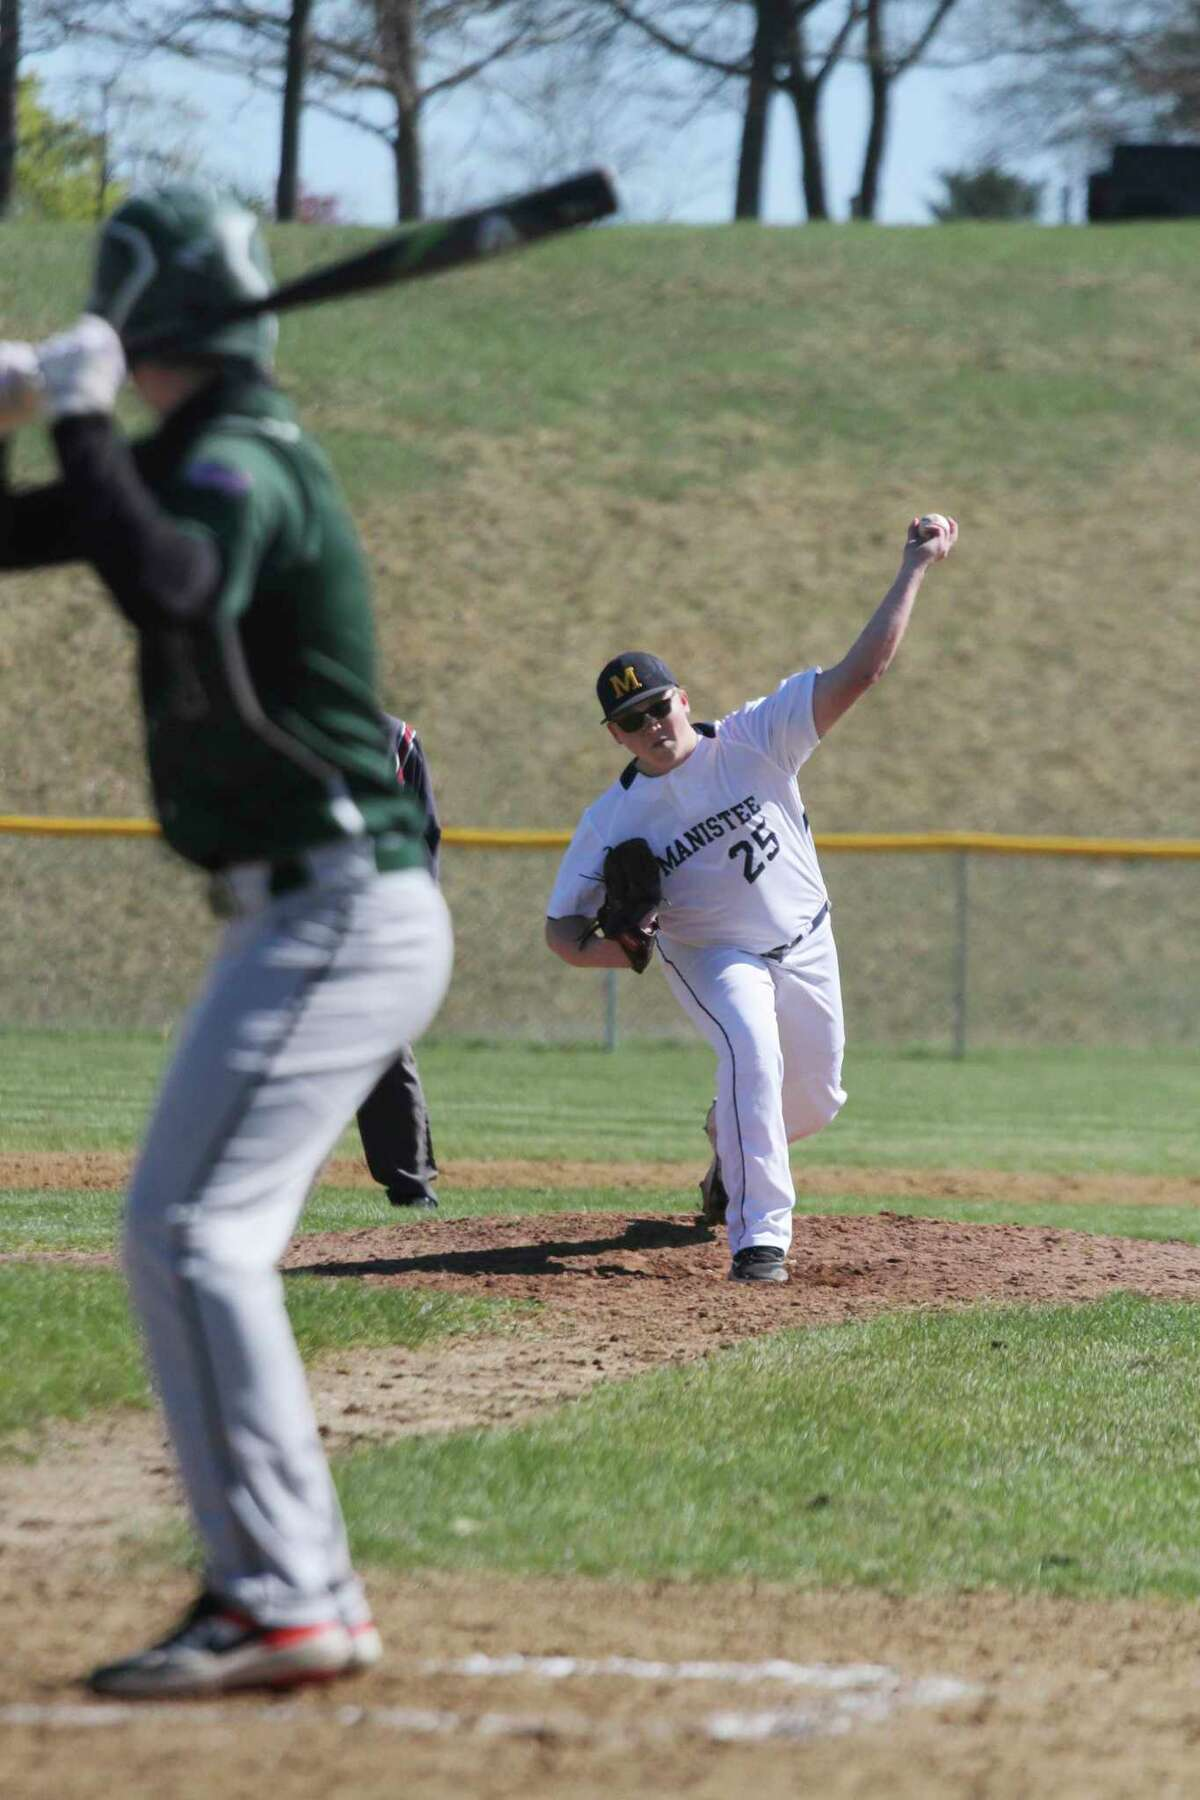 Manistee's Donavyn Kirchinger delivers a pitch during the Chippewas' doubleheader with Western Michigan Christian on Wednesday. (Dylan Savela/News Advocate)